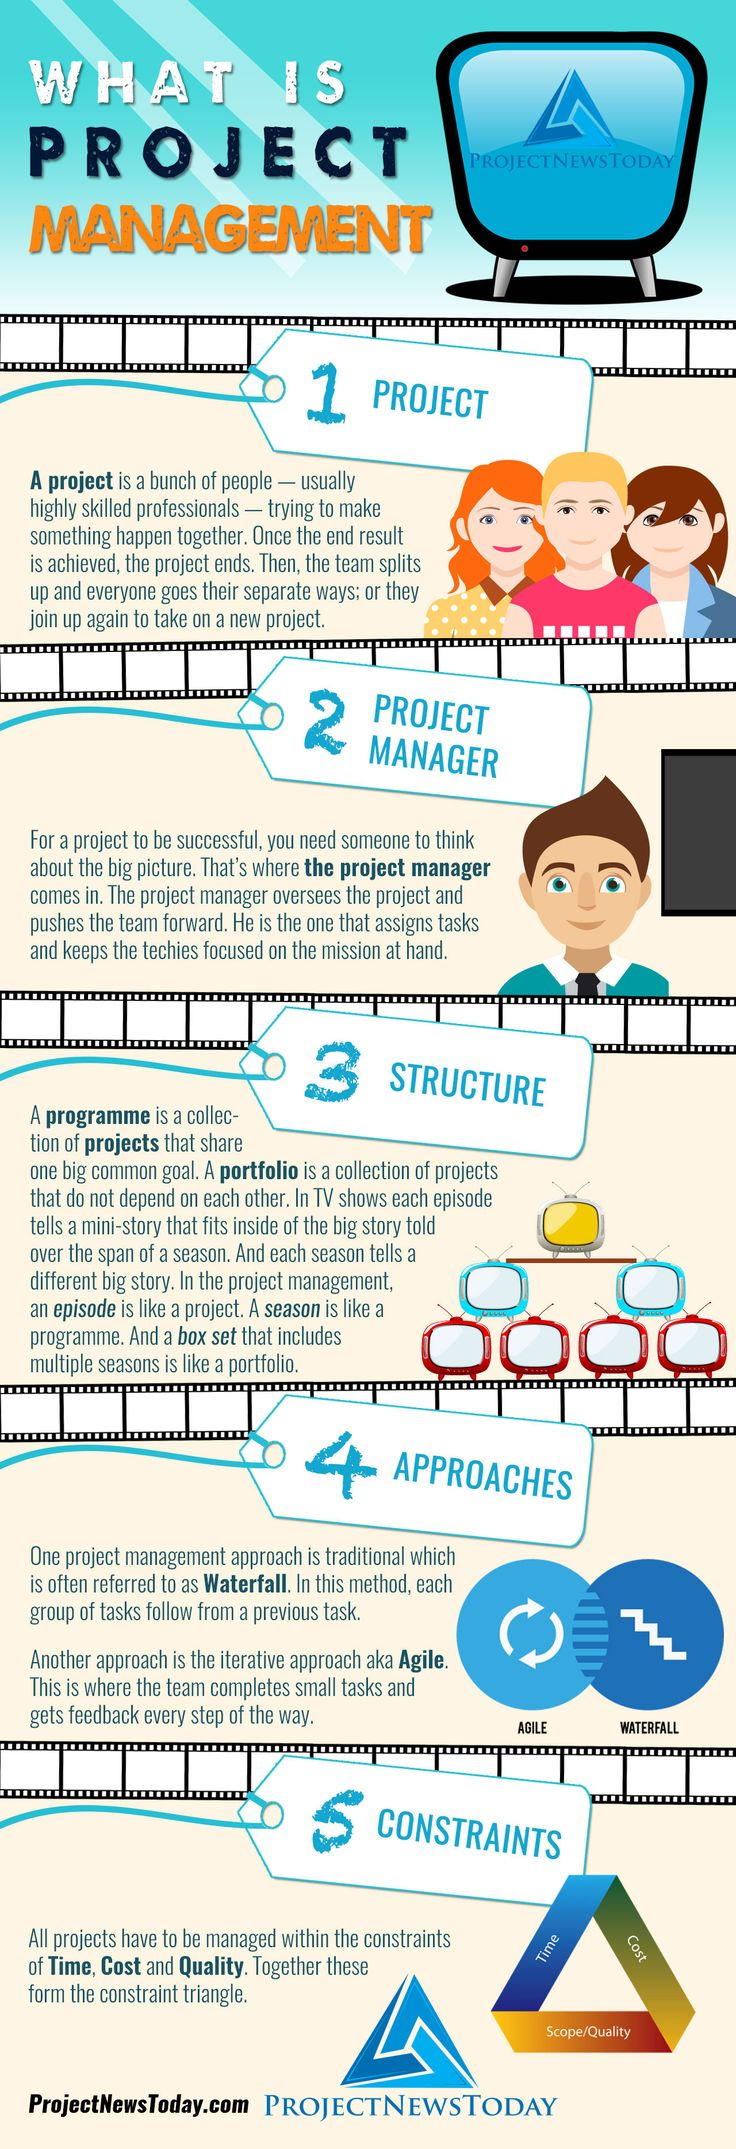 What is Project Management - Infographic - Project News Today